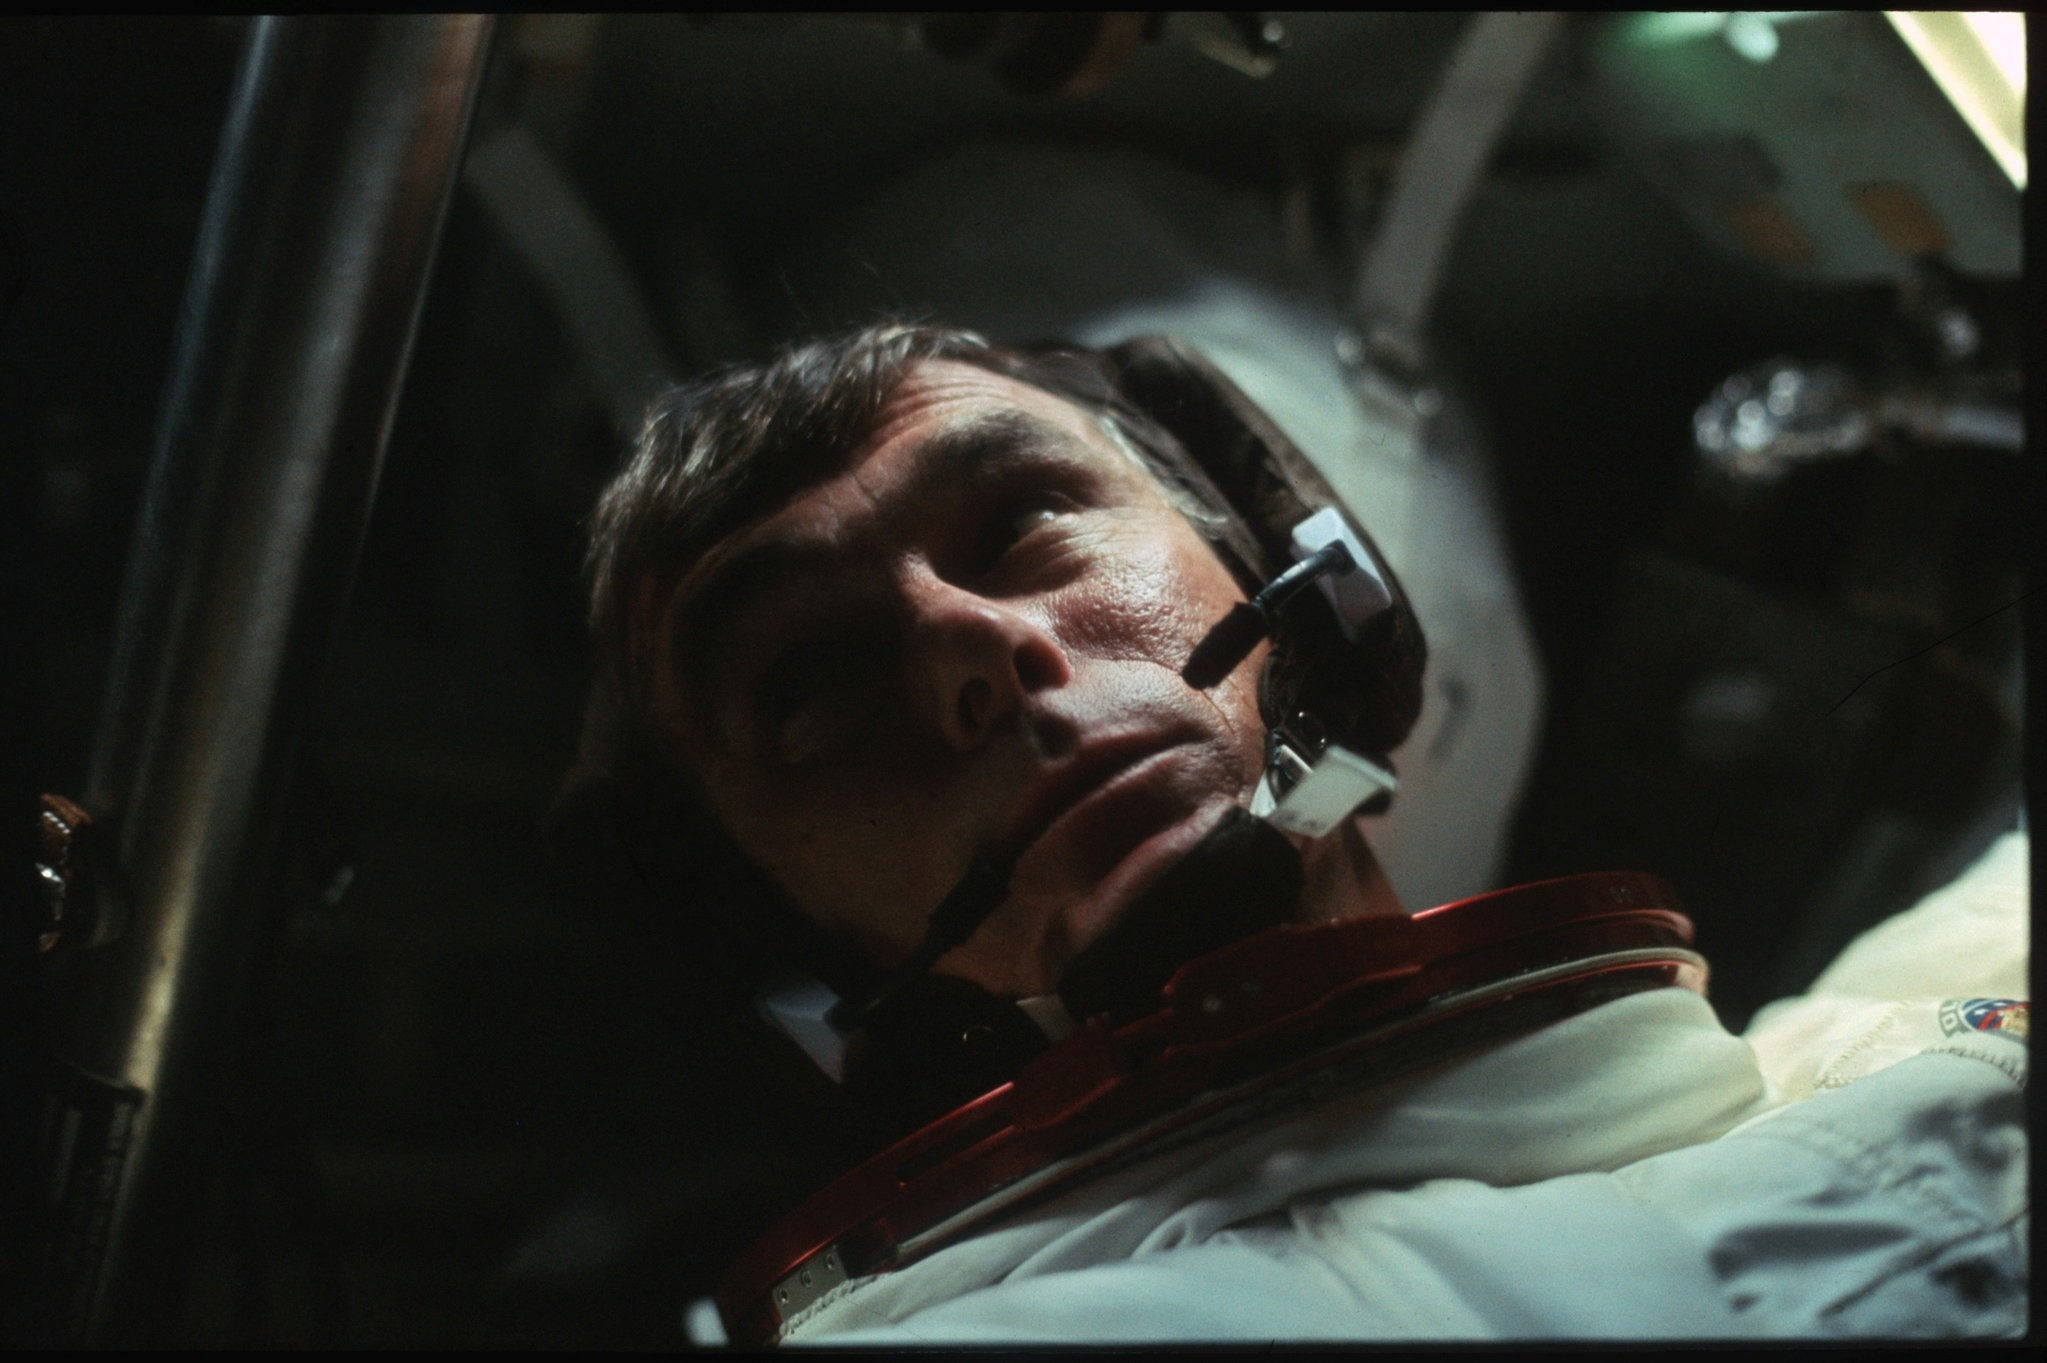 Astronaut Gene Cernan is pictured in the Command Module during the outbound trip from the moon during the Apollo 17 mission in this December, 1972 NASA handout photo. (Reuters Photo)